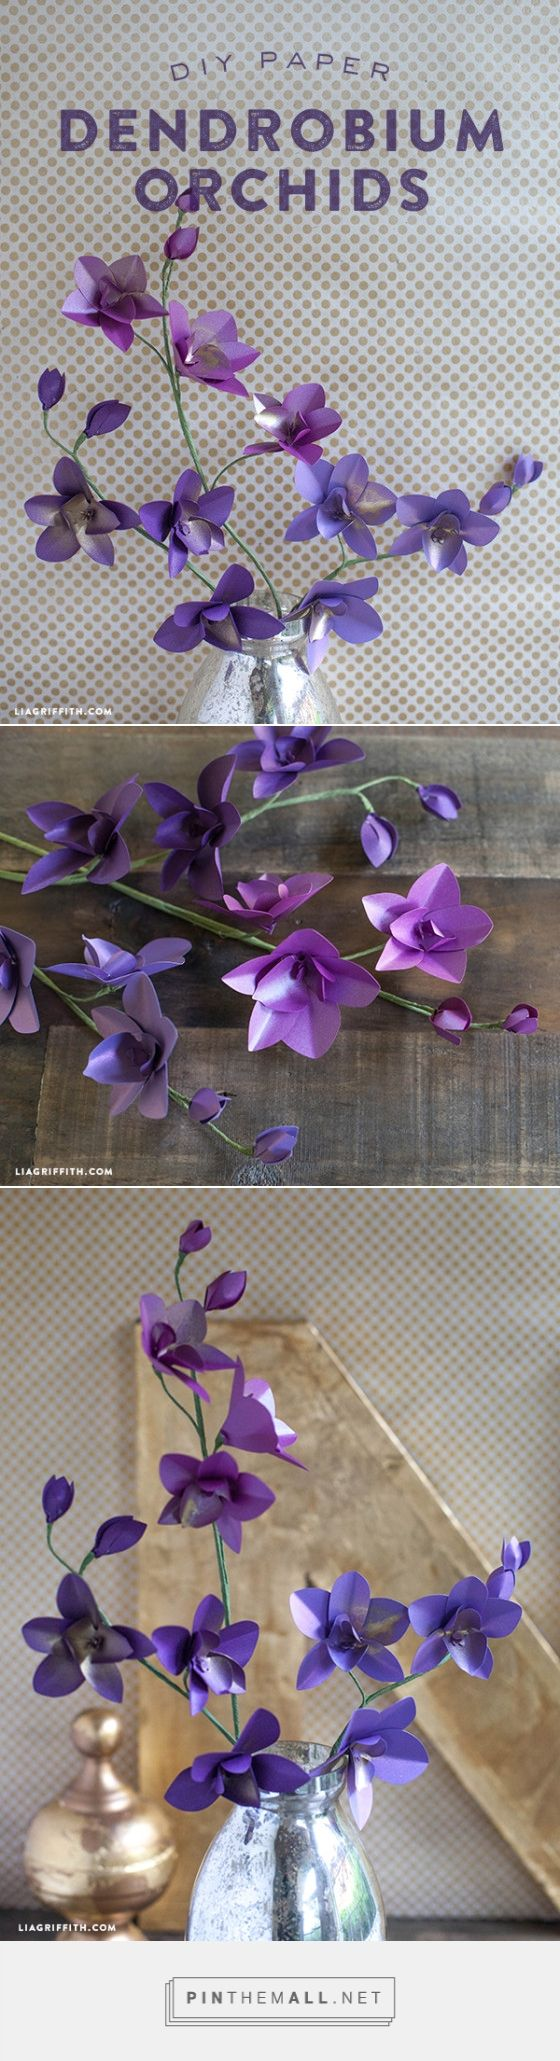 best images about homedecor on Pinterest  Free pattern Metallic